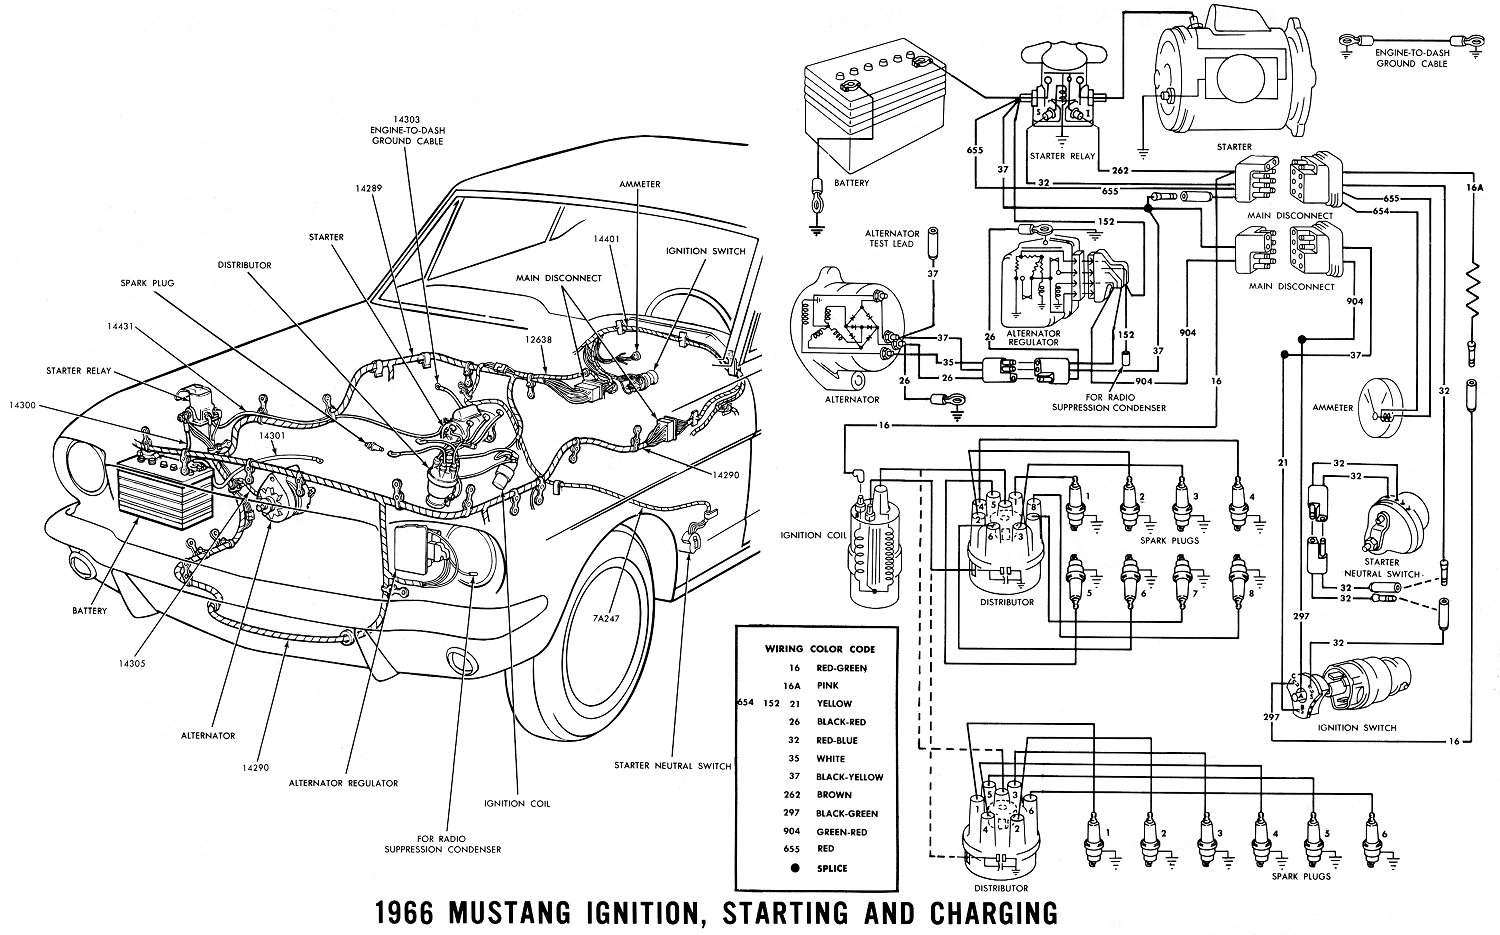 66ignit 1966 mustang wiring diagrams average joe restoration 1969 mustang ignition switch wiring diagram at soozxer.org